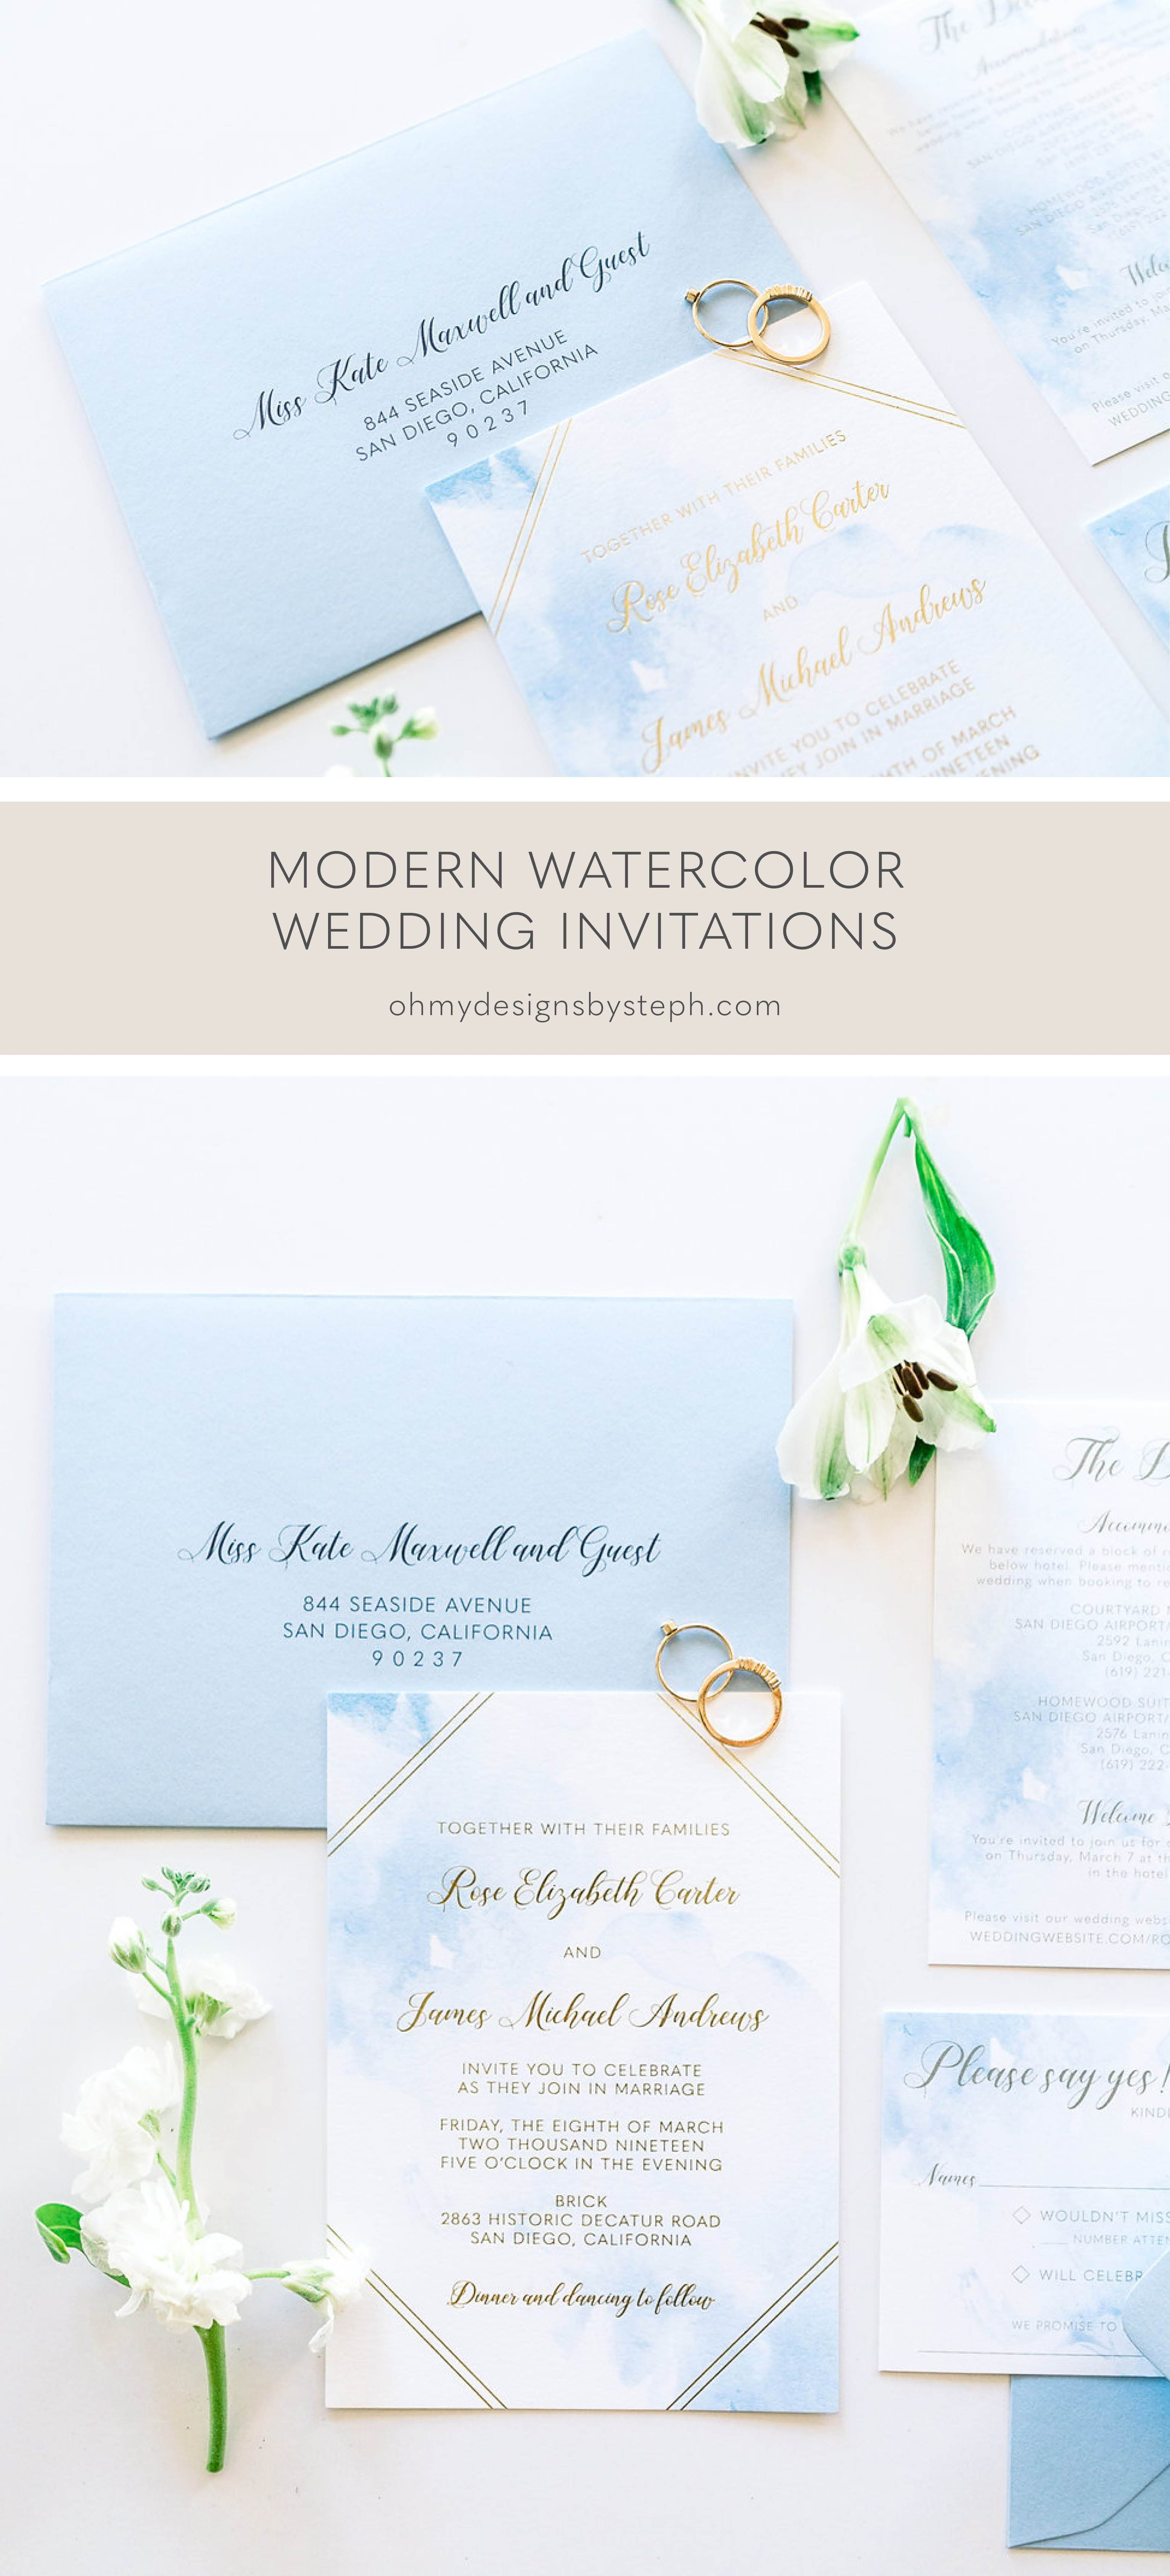 Gold Foil Watercolor Wedding Invitation Sample Luxury Wedding